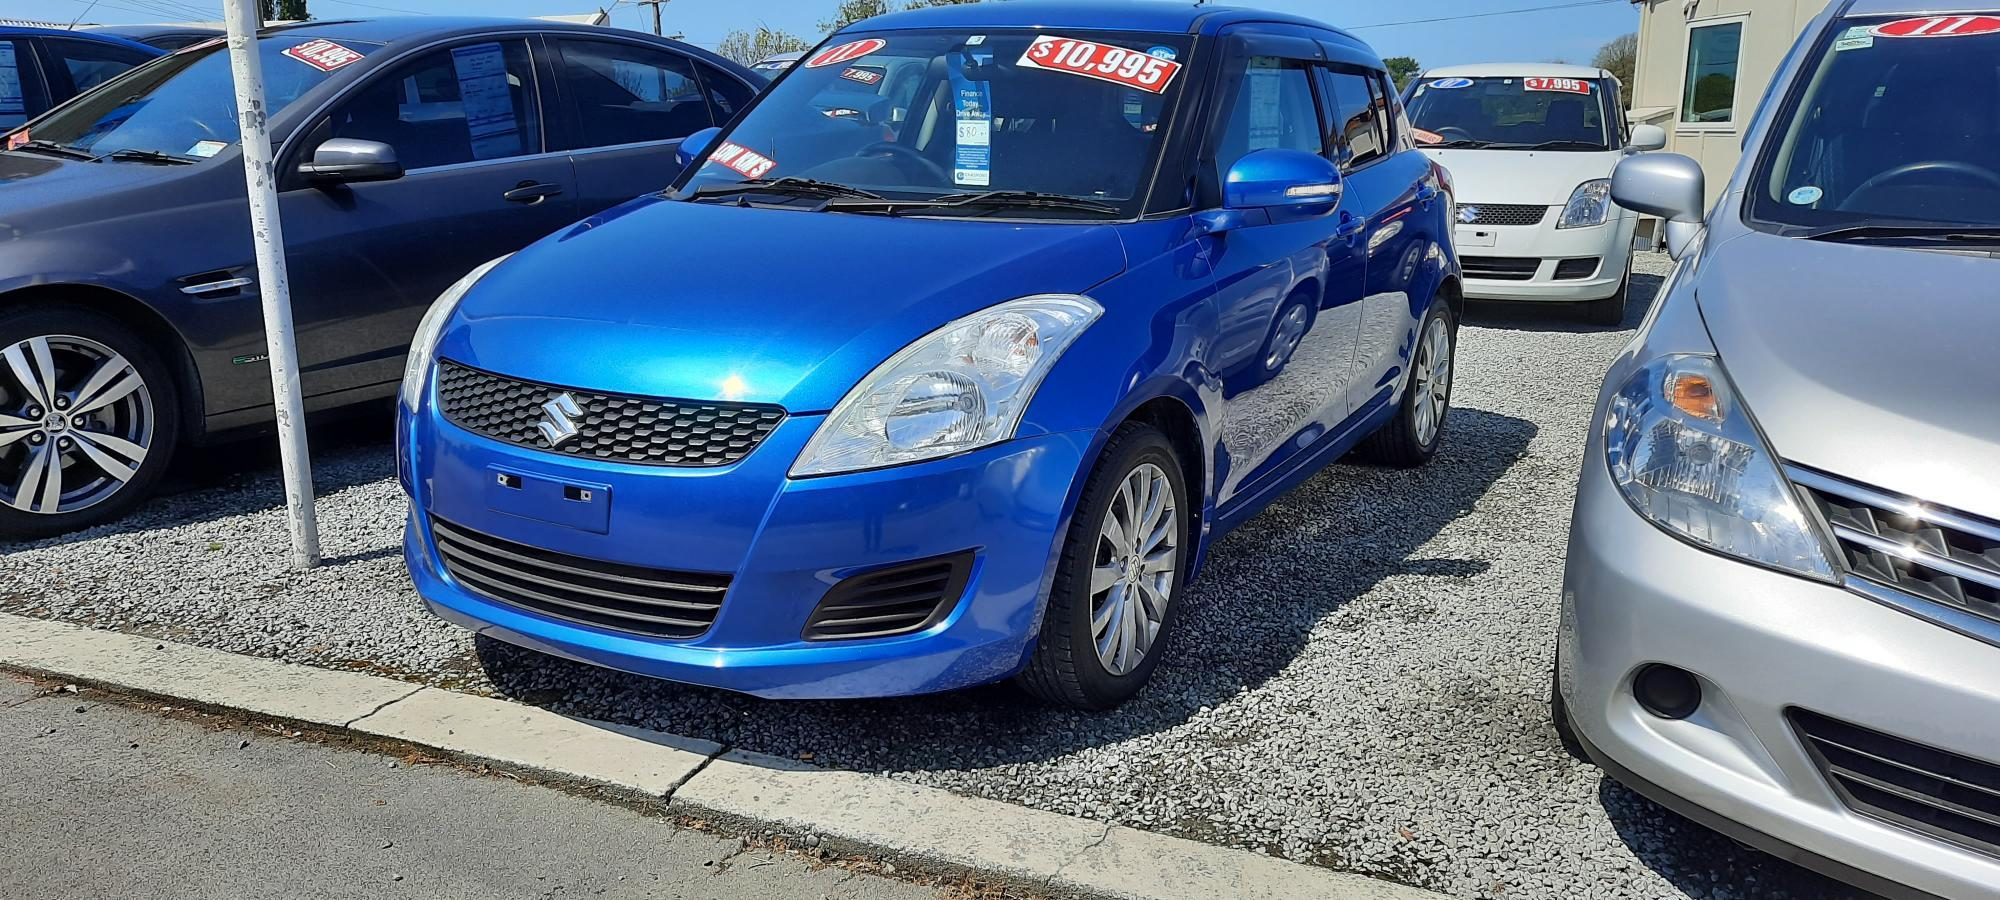 image-0, '11 Suzuki Swift at Timaru